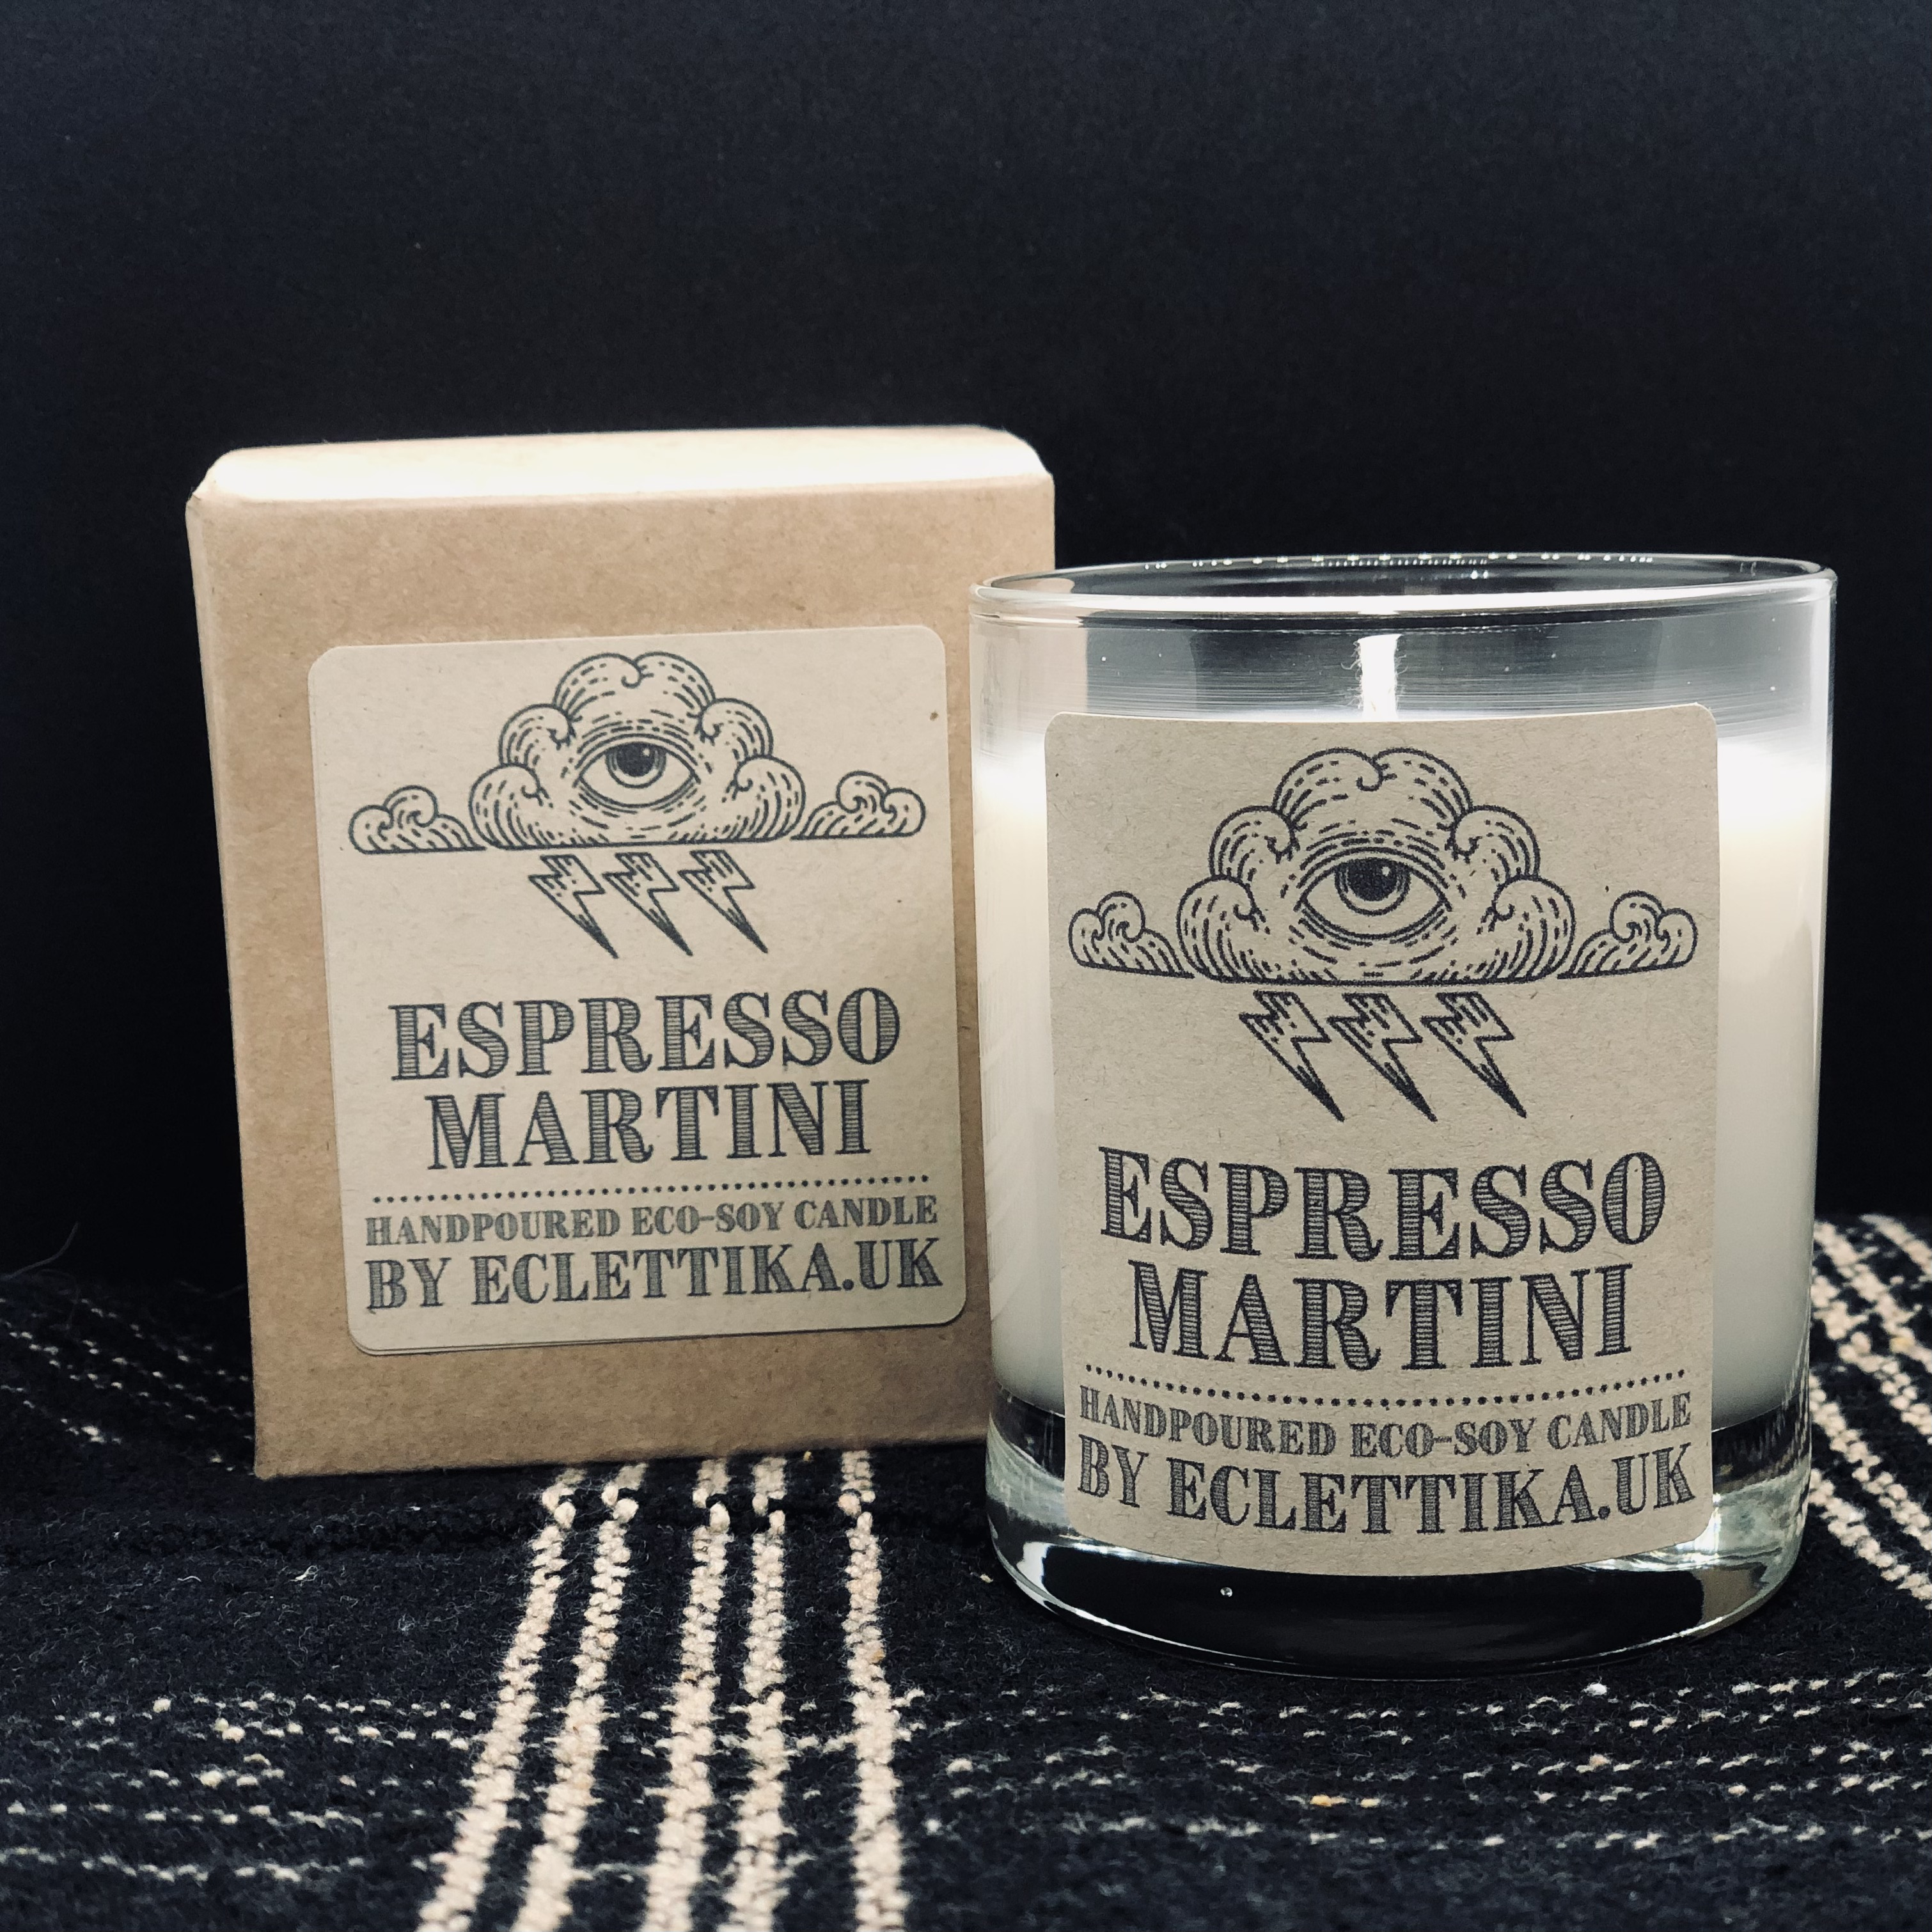 Espresso Martini Fragrance Hand Poured Candle by Eclettika